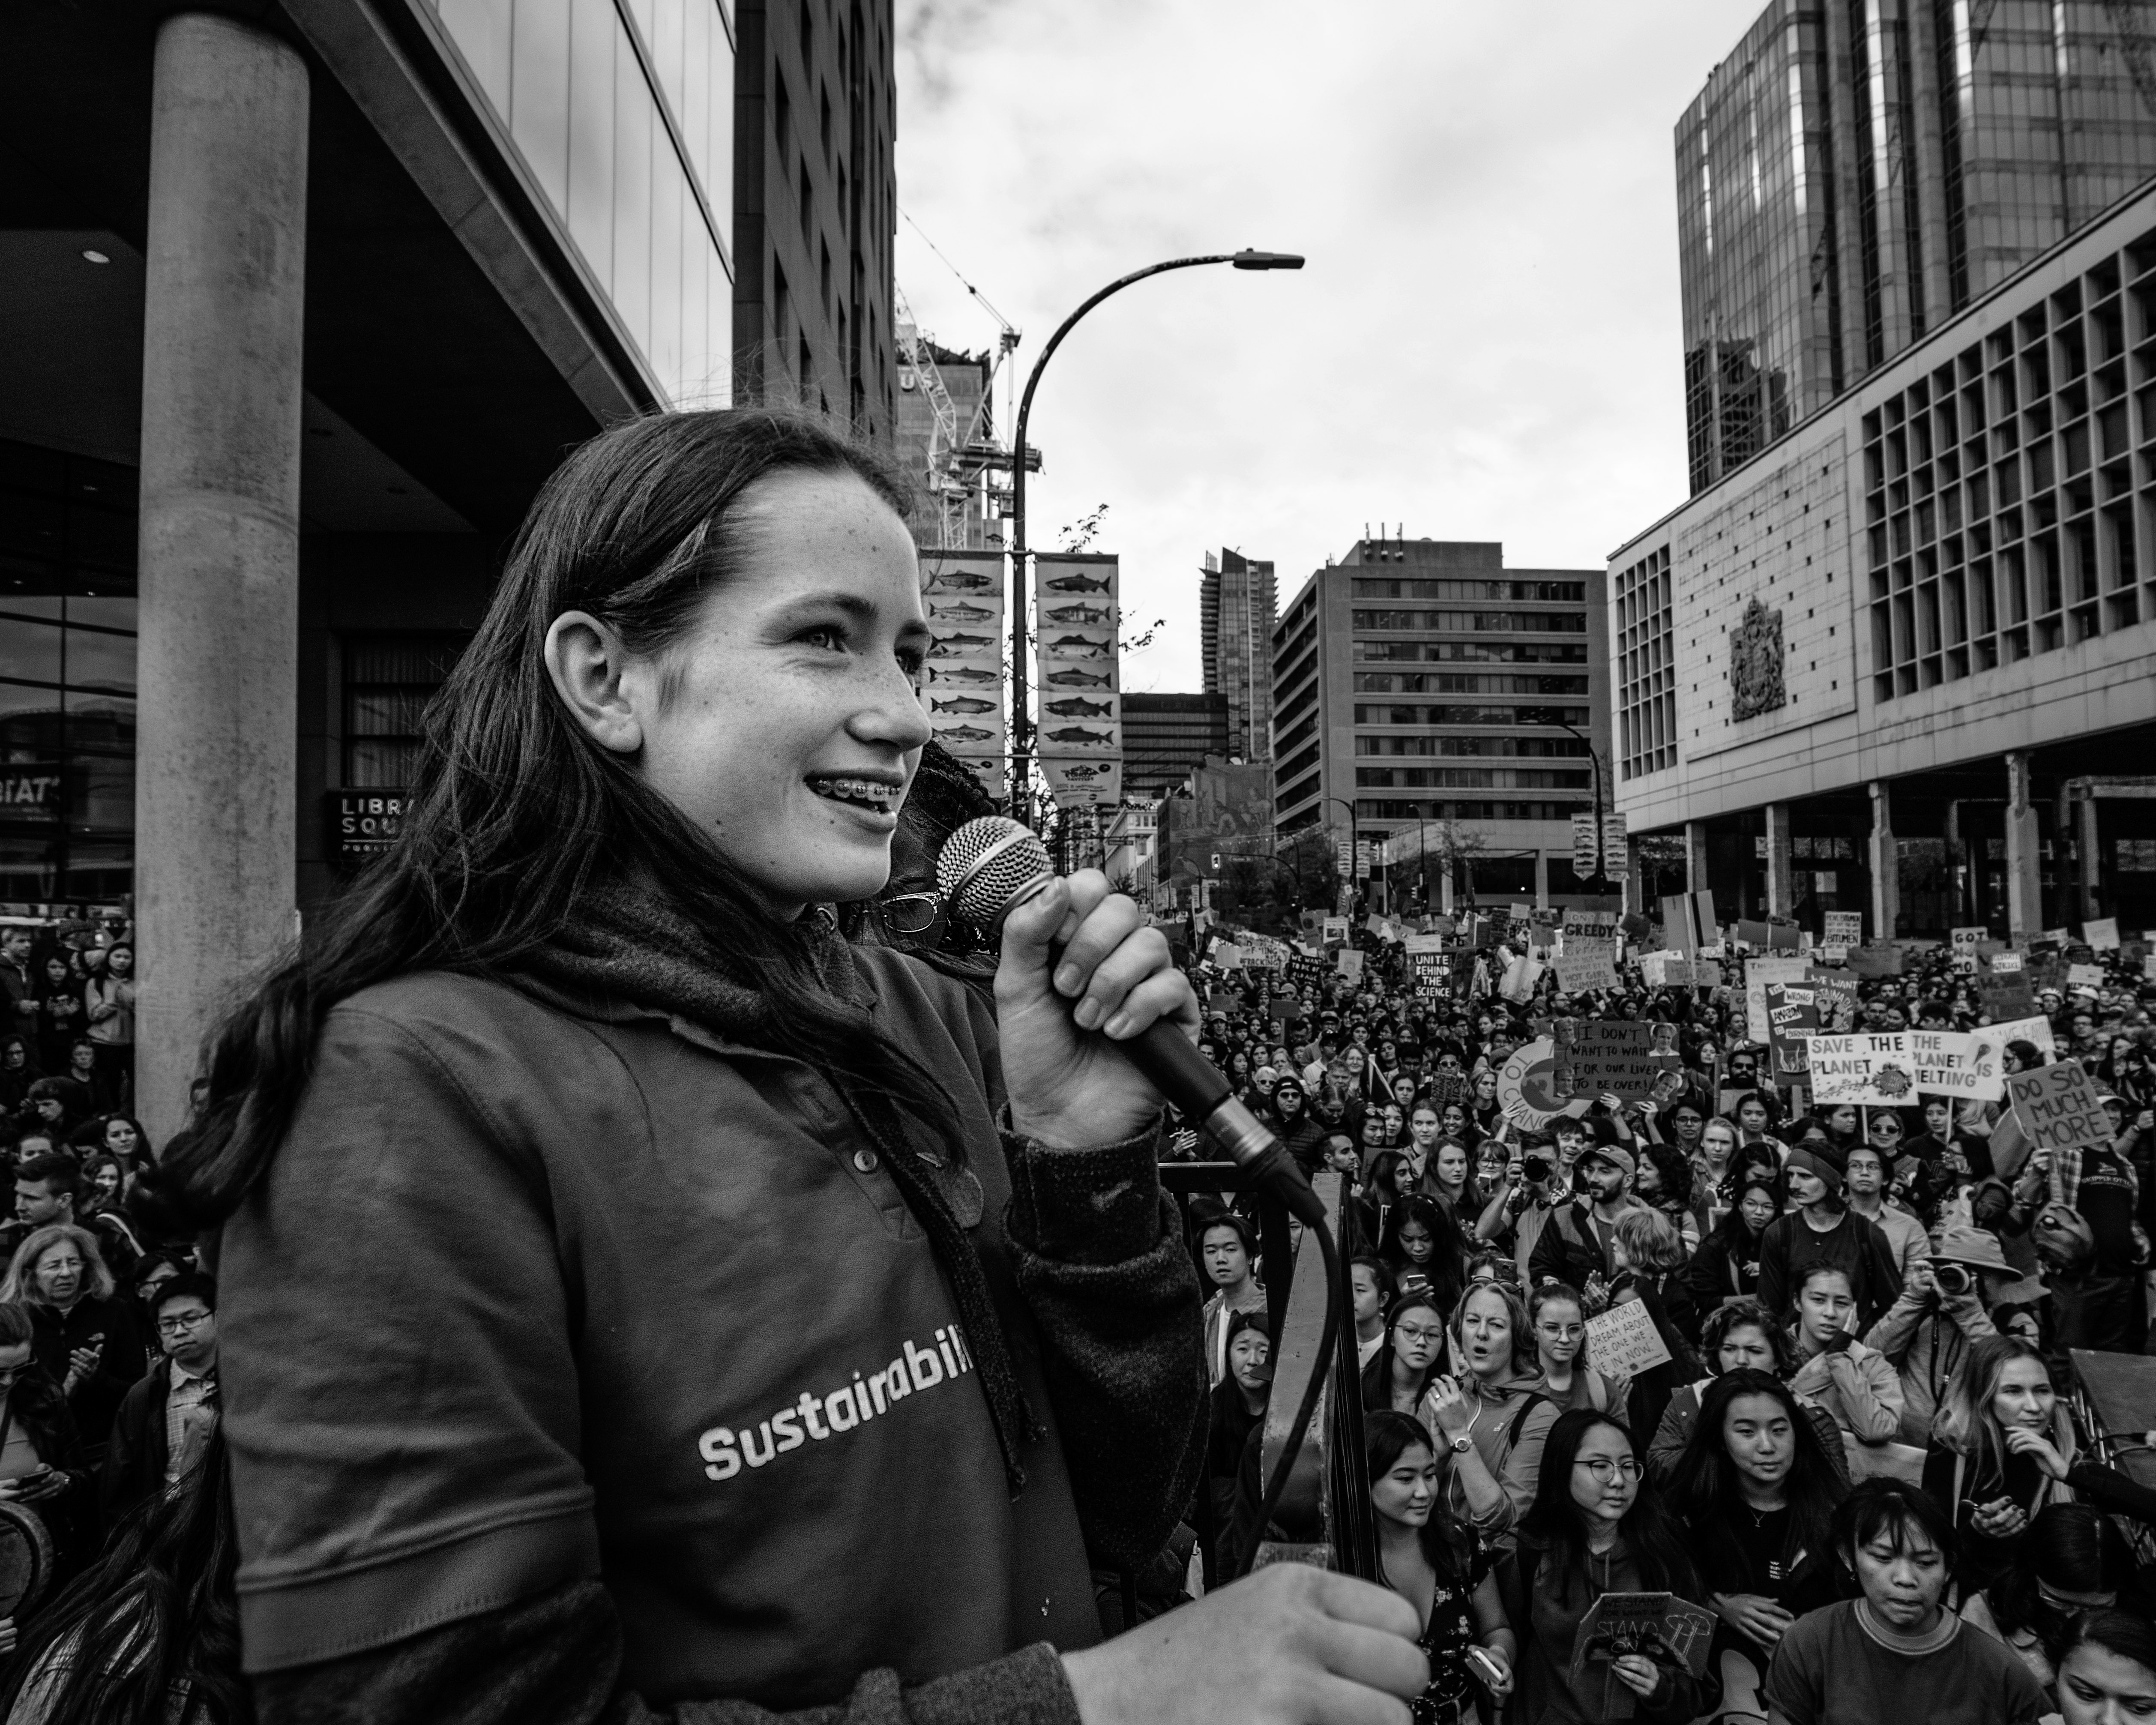 Lilah Williamson, 15, is a member of the climate activist group Sustainabiliteens. She addressed an estimated 100,000 people during a climate strike at the corner of West Hamilton and Georgia Streets on Friday, Sept. 27, 2019. (Maggie MacPherson/CBC)